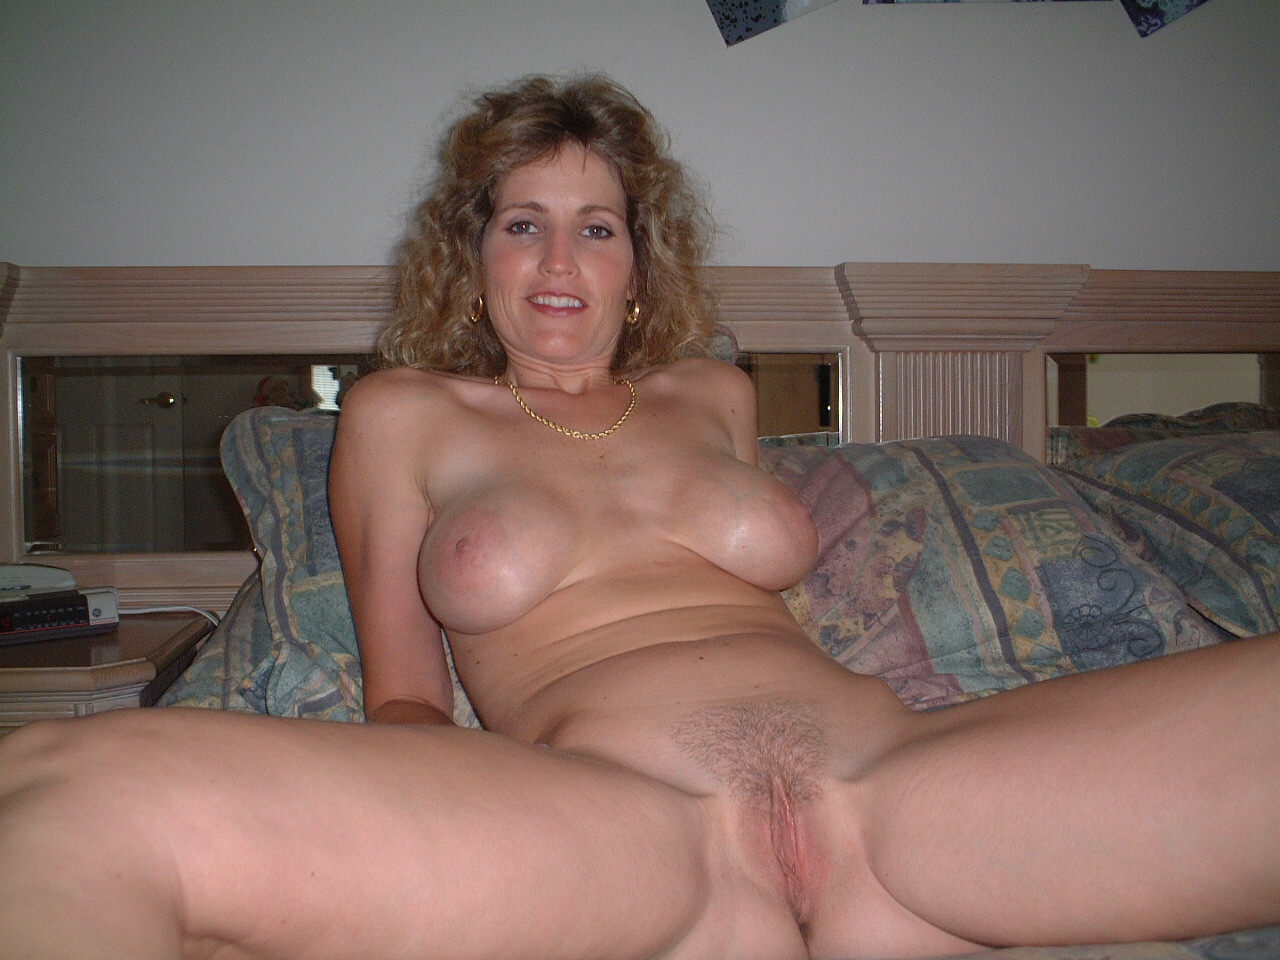 Wife needs instruction on blowjobs